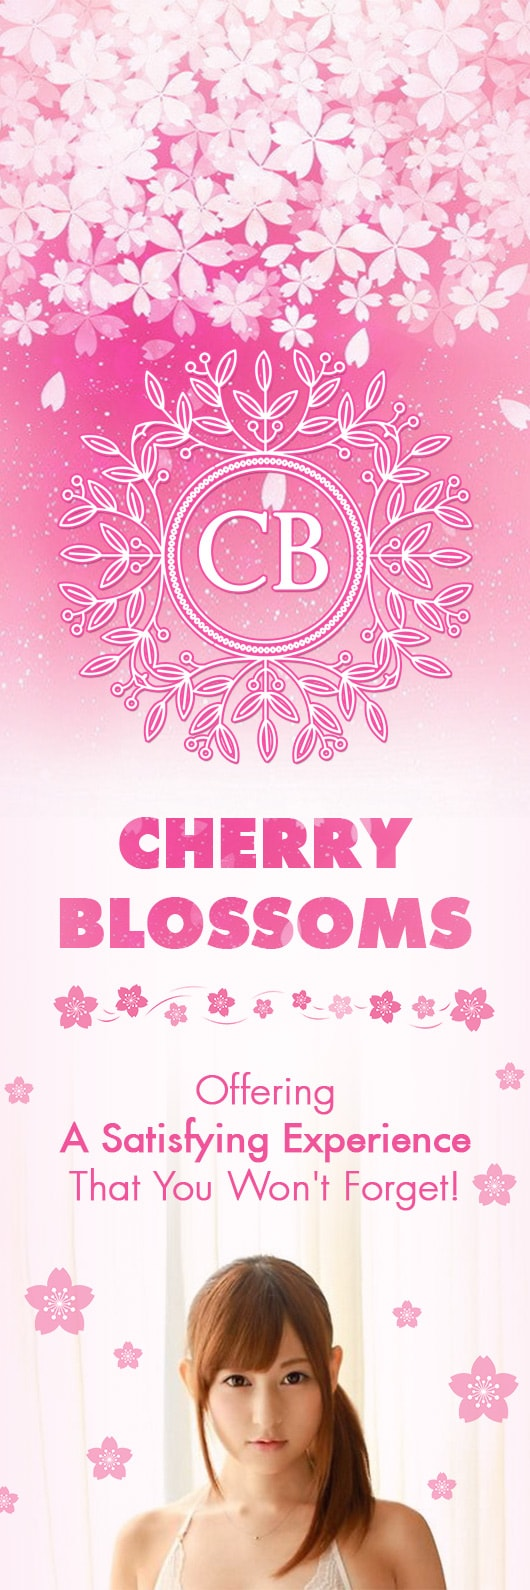 Cherry Blossoms Promotion